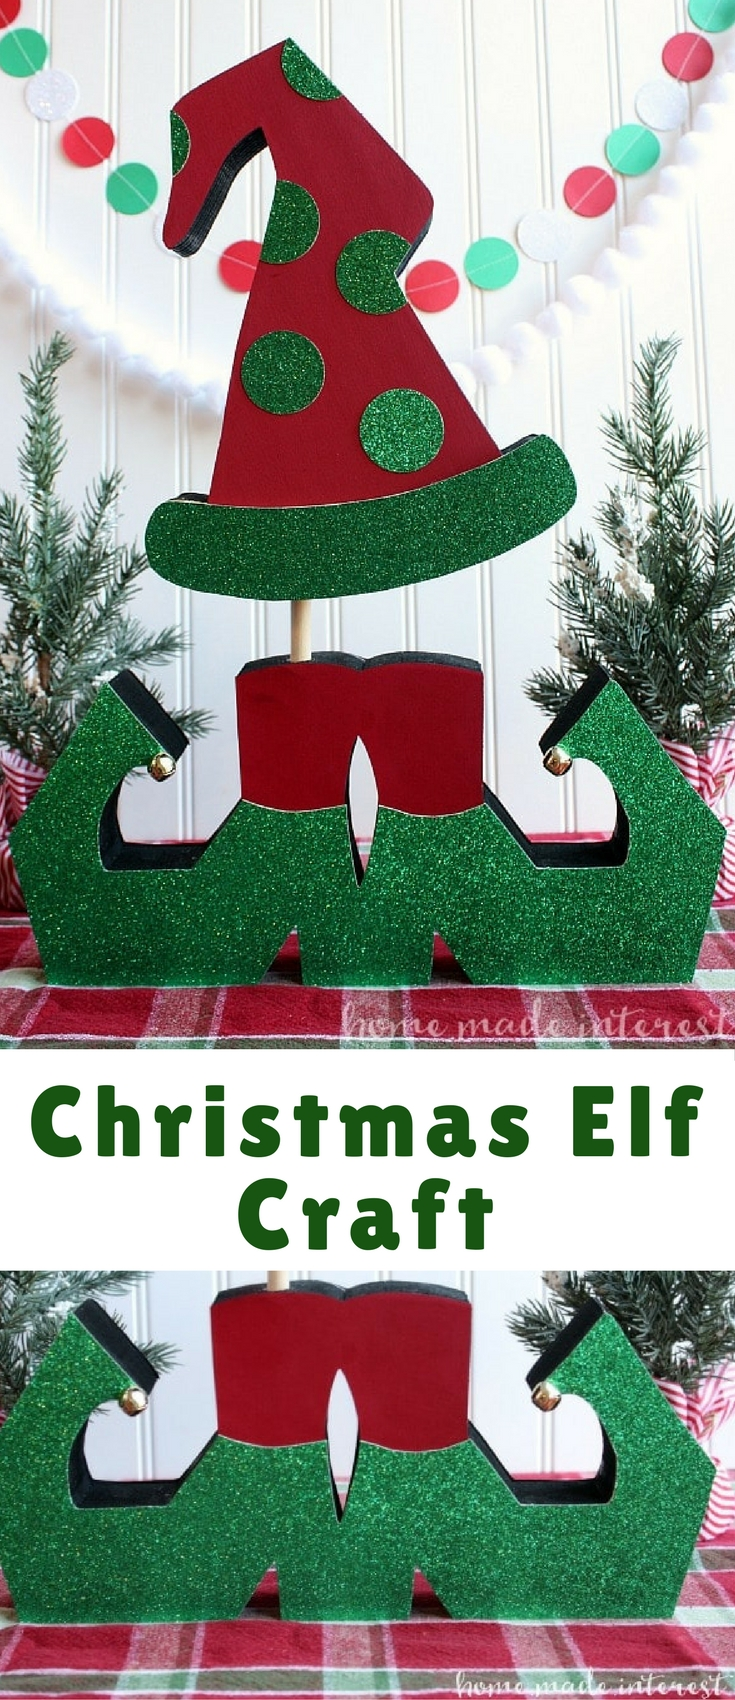 Decorate your house for Christmas with this simple Christmas Elf Craft!